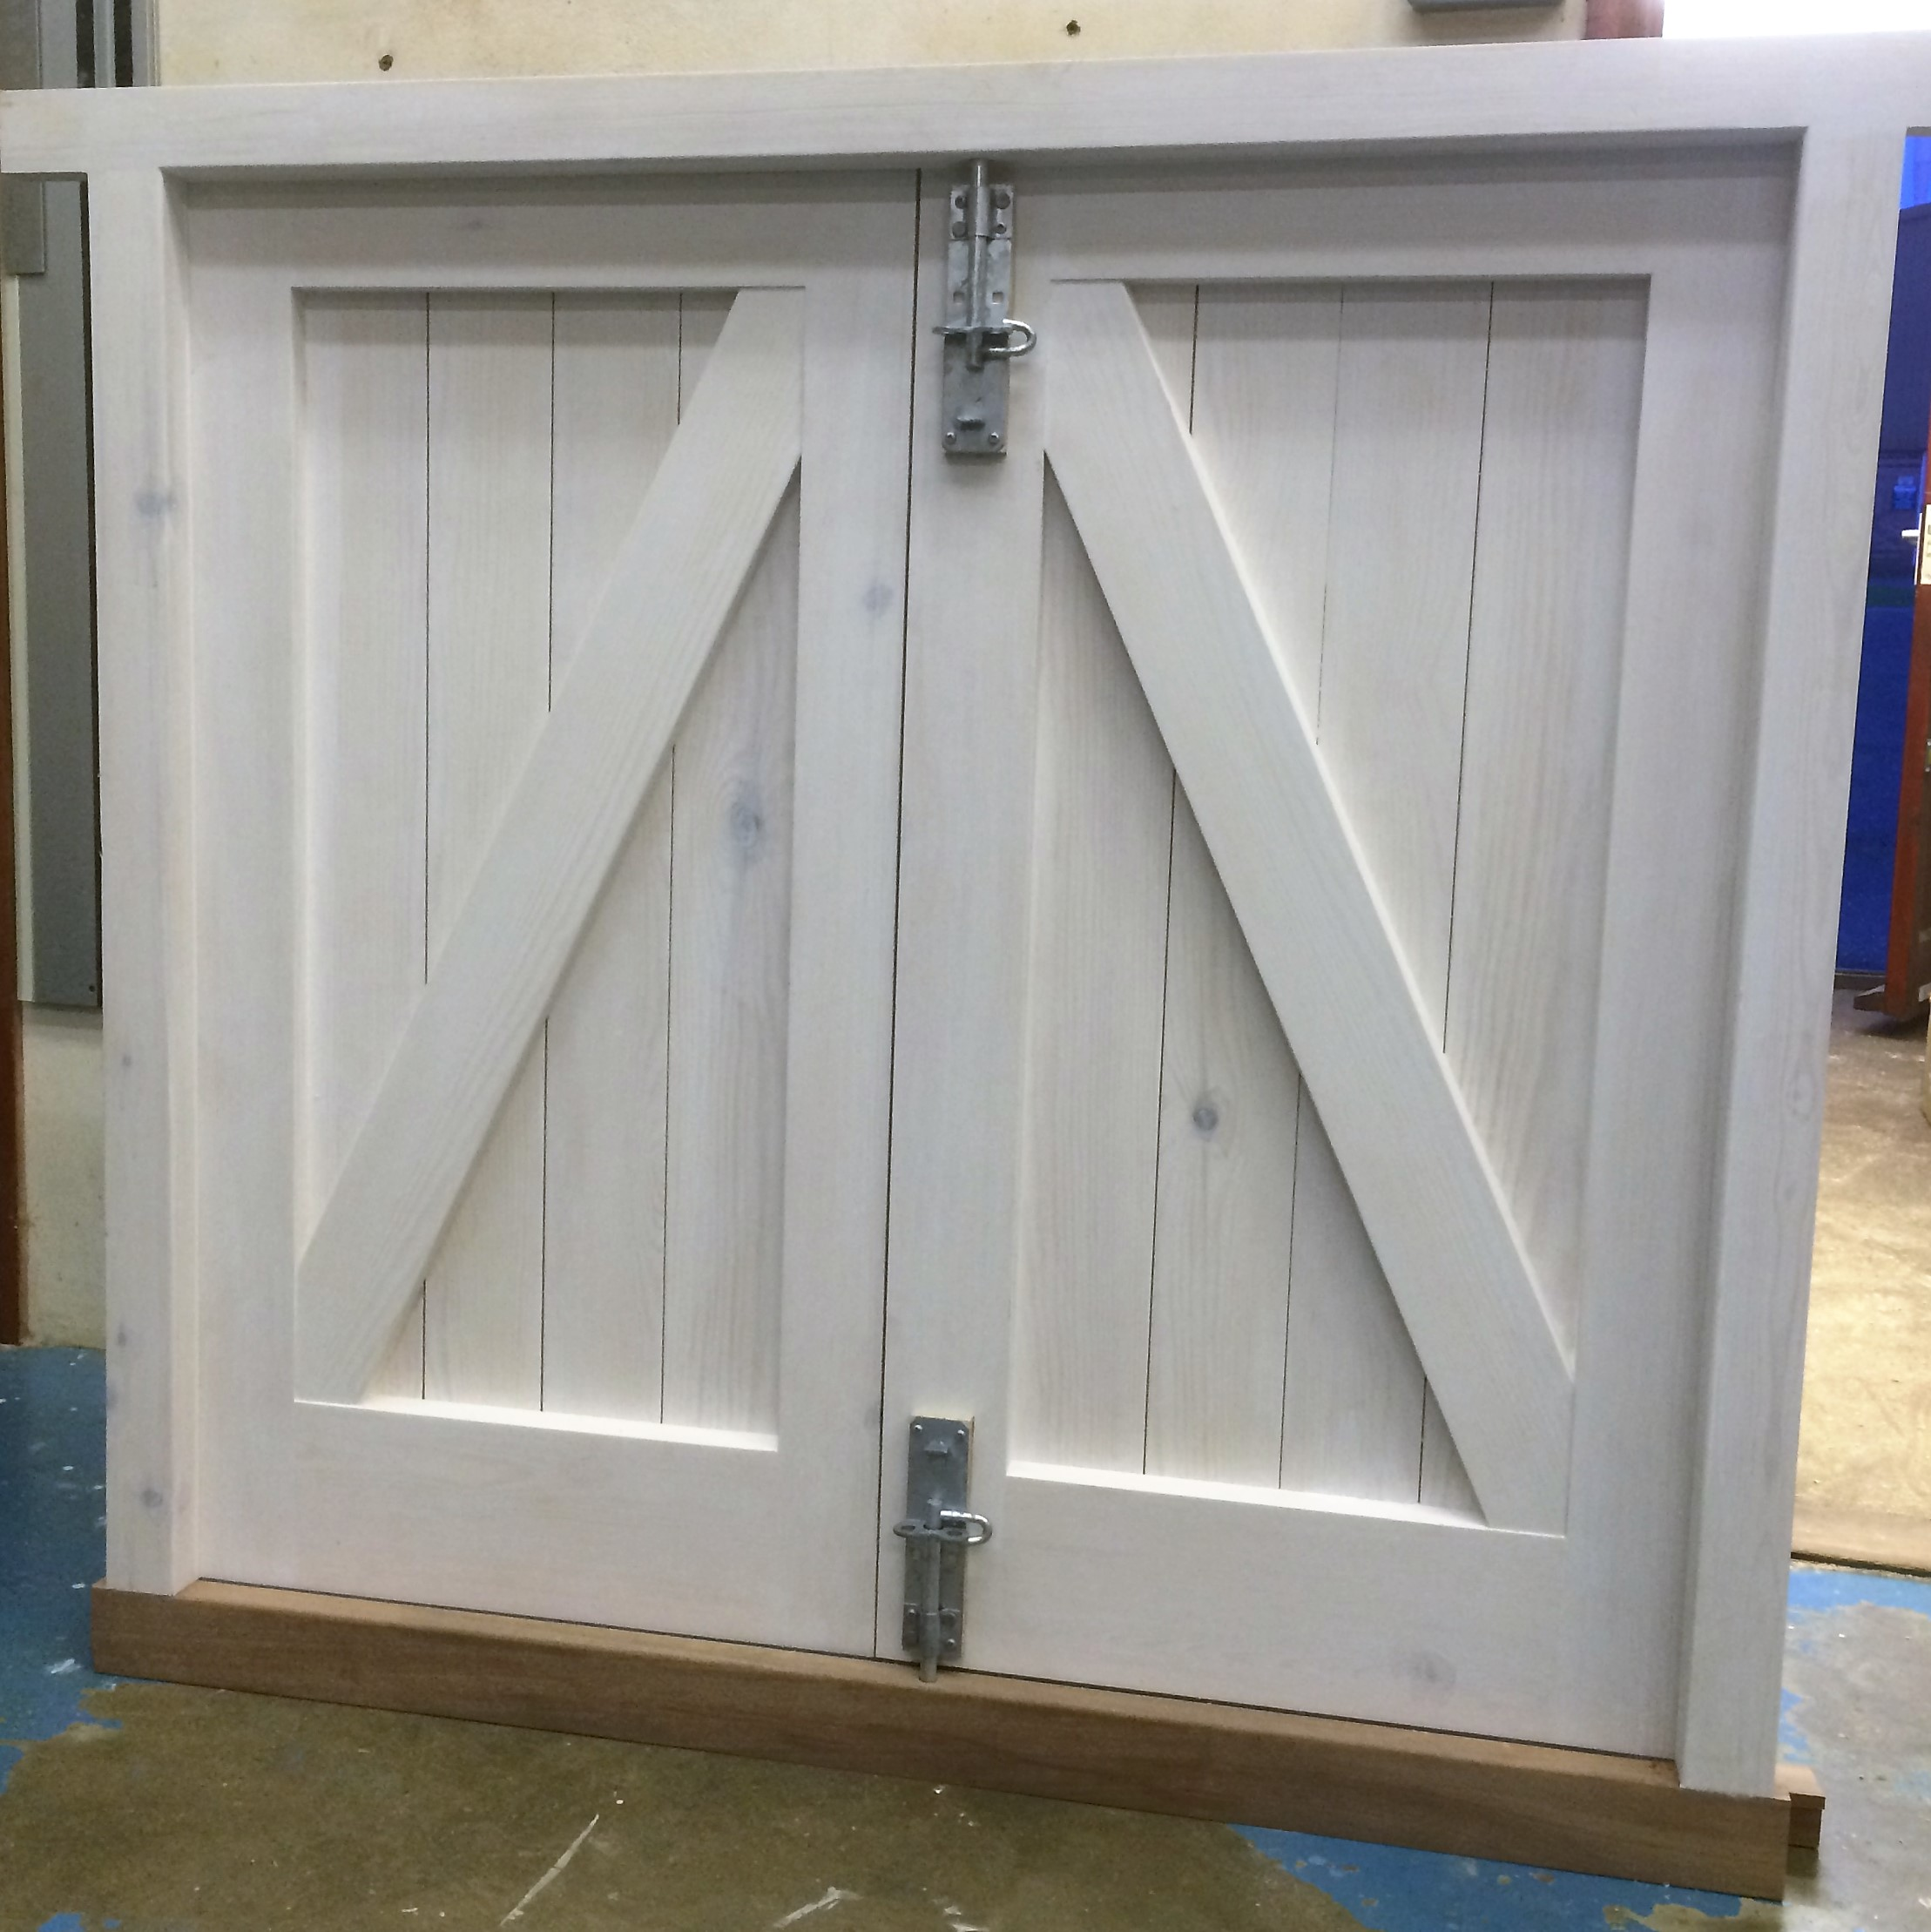 2218 #2D3D68 Doors Bespoke Design And Build Sudbury Suffolk East Anglia save image Precision Entry Doors 45772217